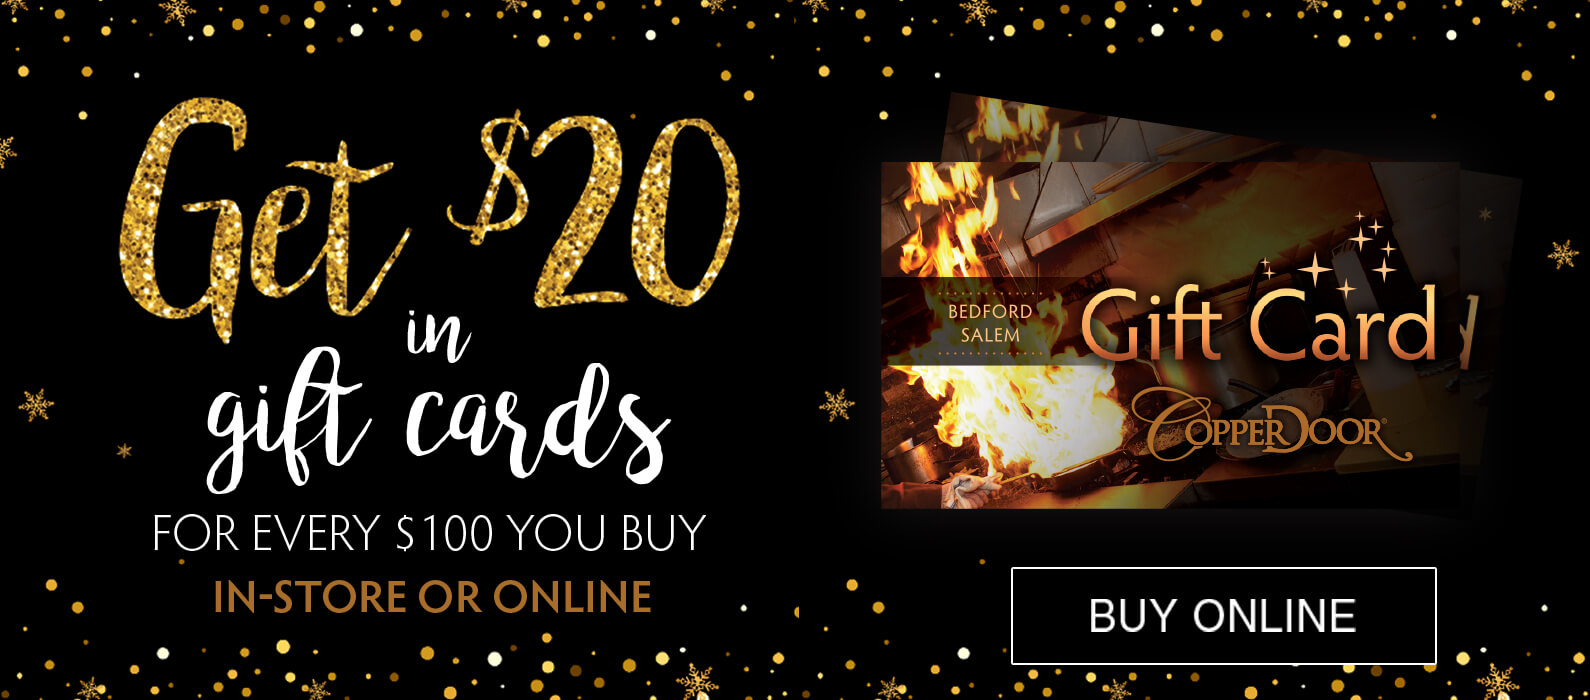 Copper Door Holiday Gift Cards - Buy $100 Get $20